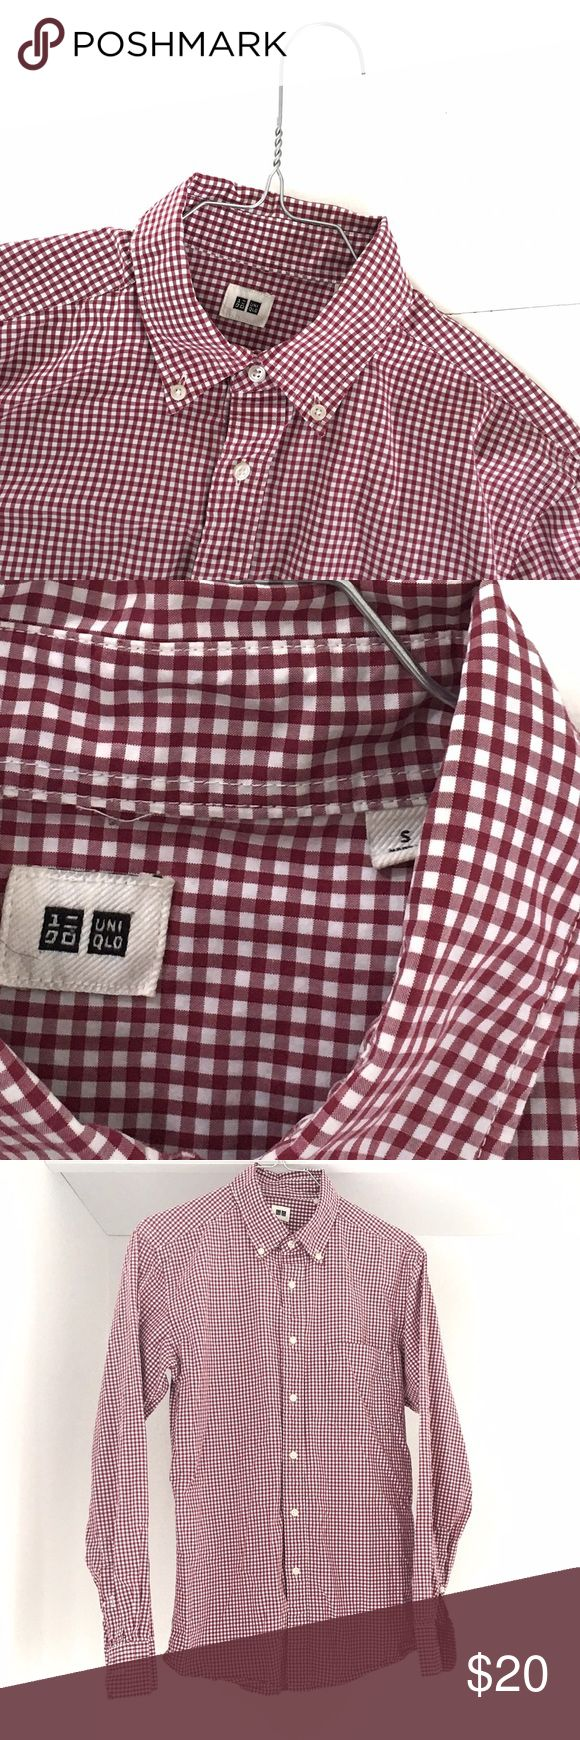 Men's Red Checkered UNIQLO Collared Shirt This shirt is in lovely condition.  We would keep it, but unfortunately it is just a bit too small for my husband to wear comfortably.  Gift this to a brother, a friend, a significant other, or your father!  They would love this piece.  (It goes with nearly anything!) Uniqlo Shirts Dress Shirts